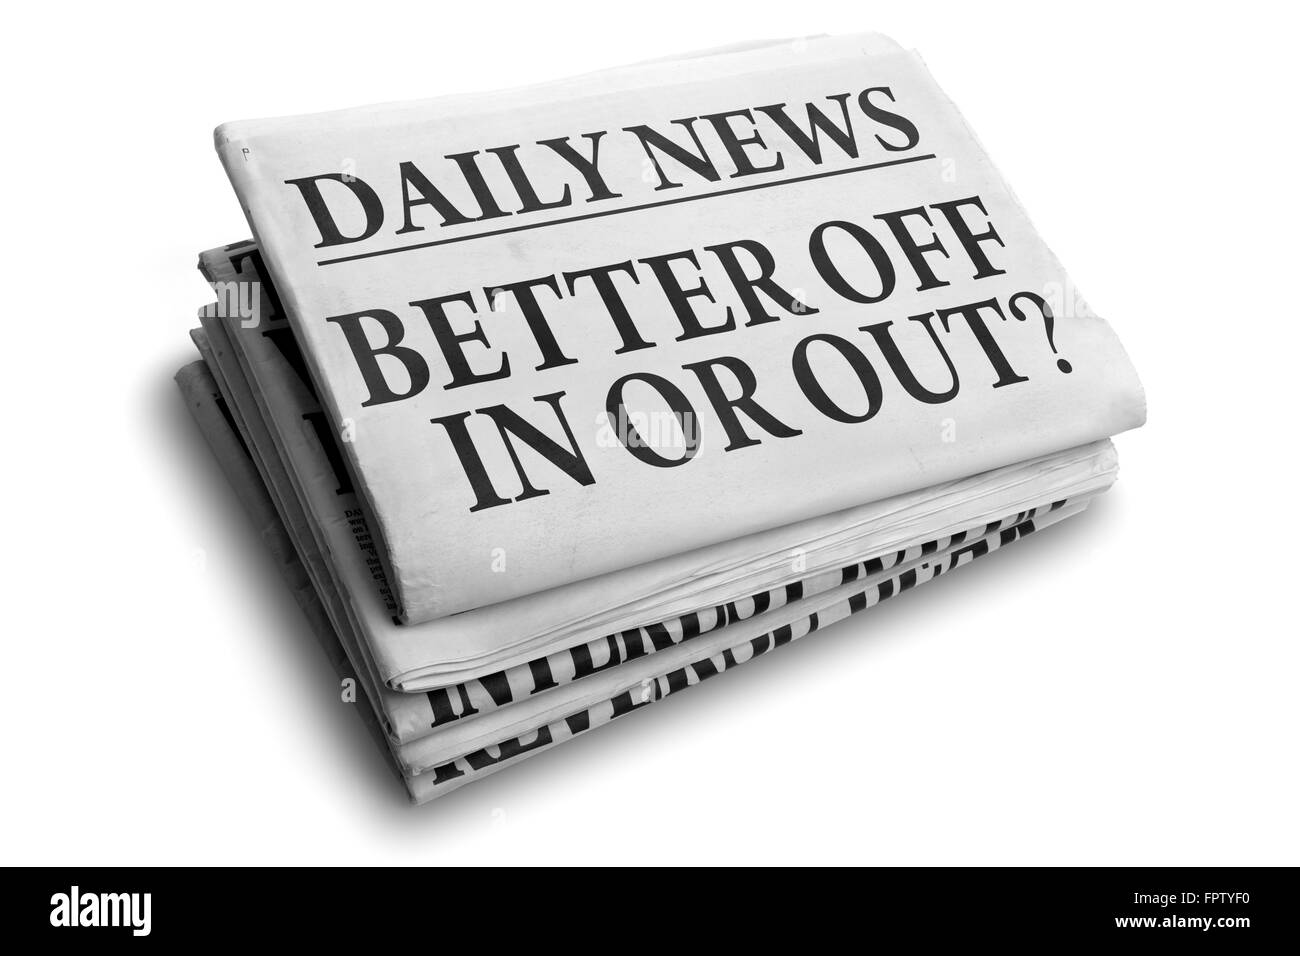 Better off in or out daily newspaper headline - Stock Image